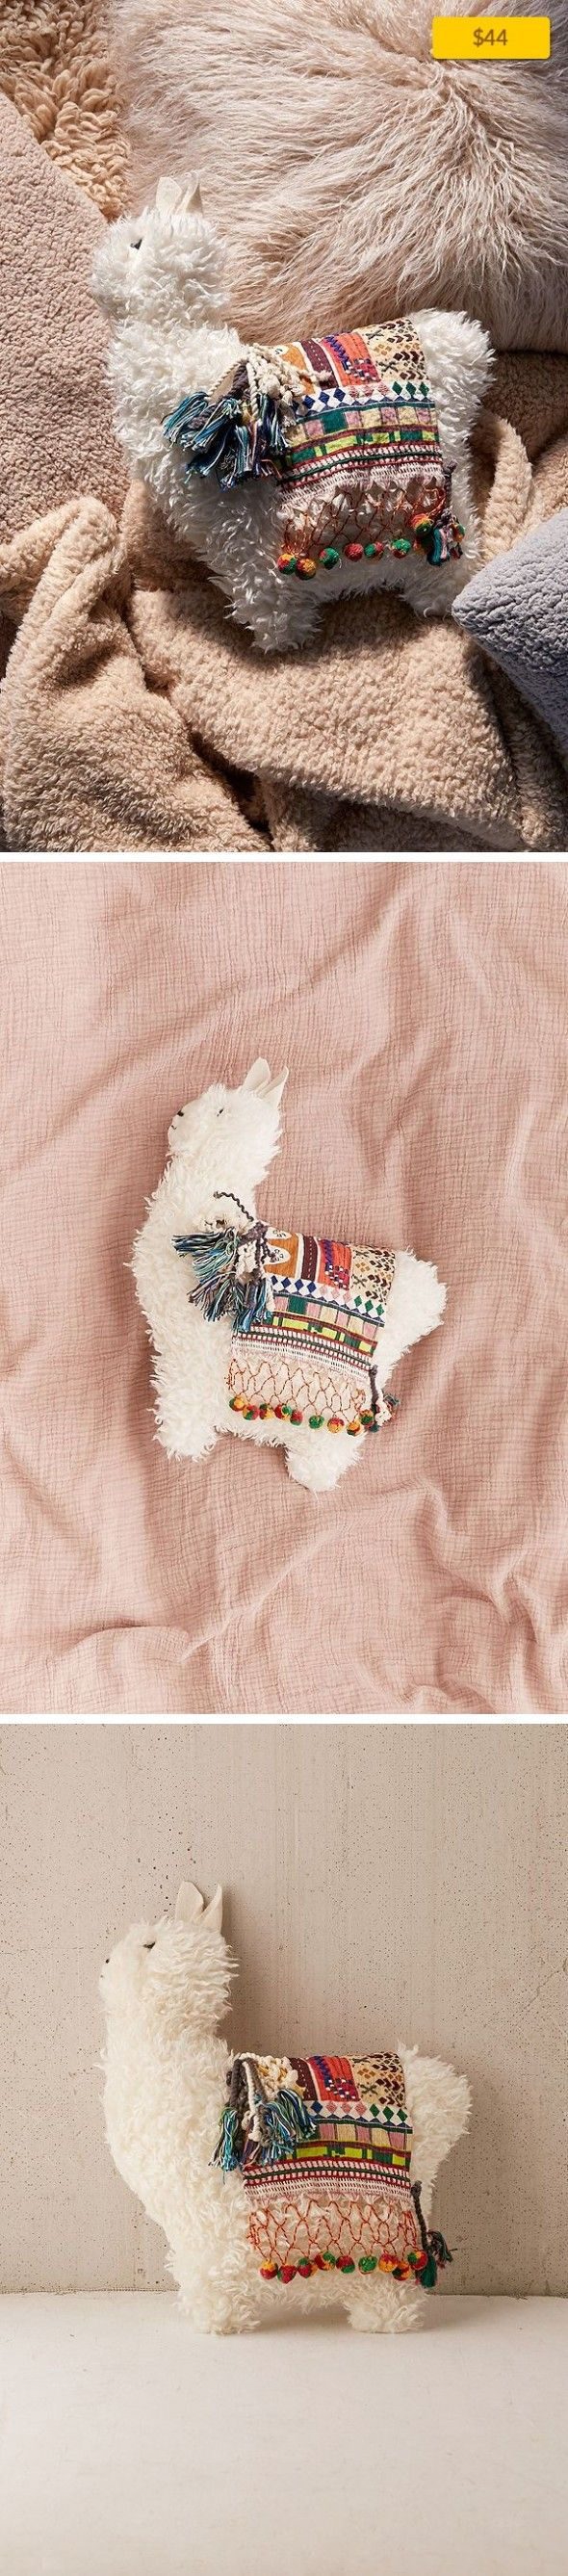 """Furry Llama Pillow Apartment, Art + Decor, Pillows + Throws   Super soft + adorable lil llama pillow! Made with faux fur + cotton for a cozy addition to any couch, chair or bed. Content + Care - Faux fur, cotton - Spot clean - Imported Size - Dimensions: 15""""l x 17""""h"""